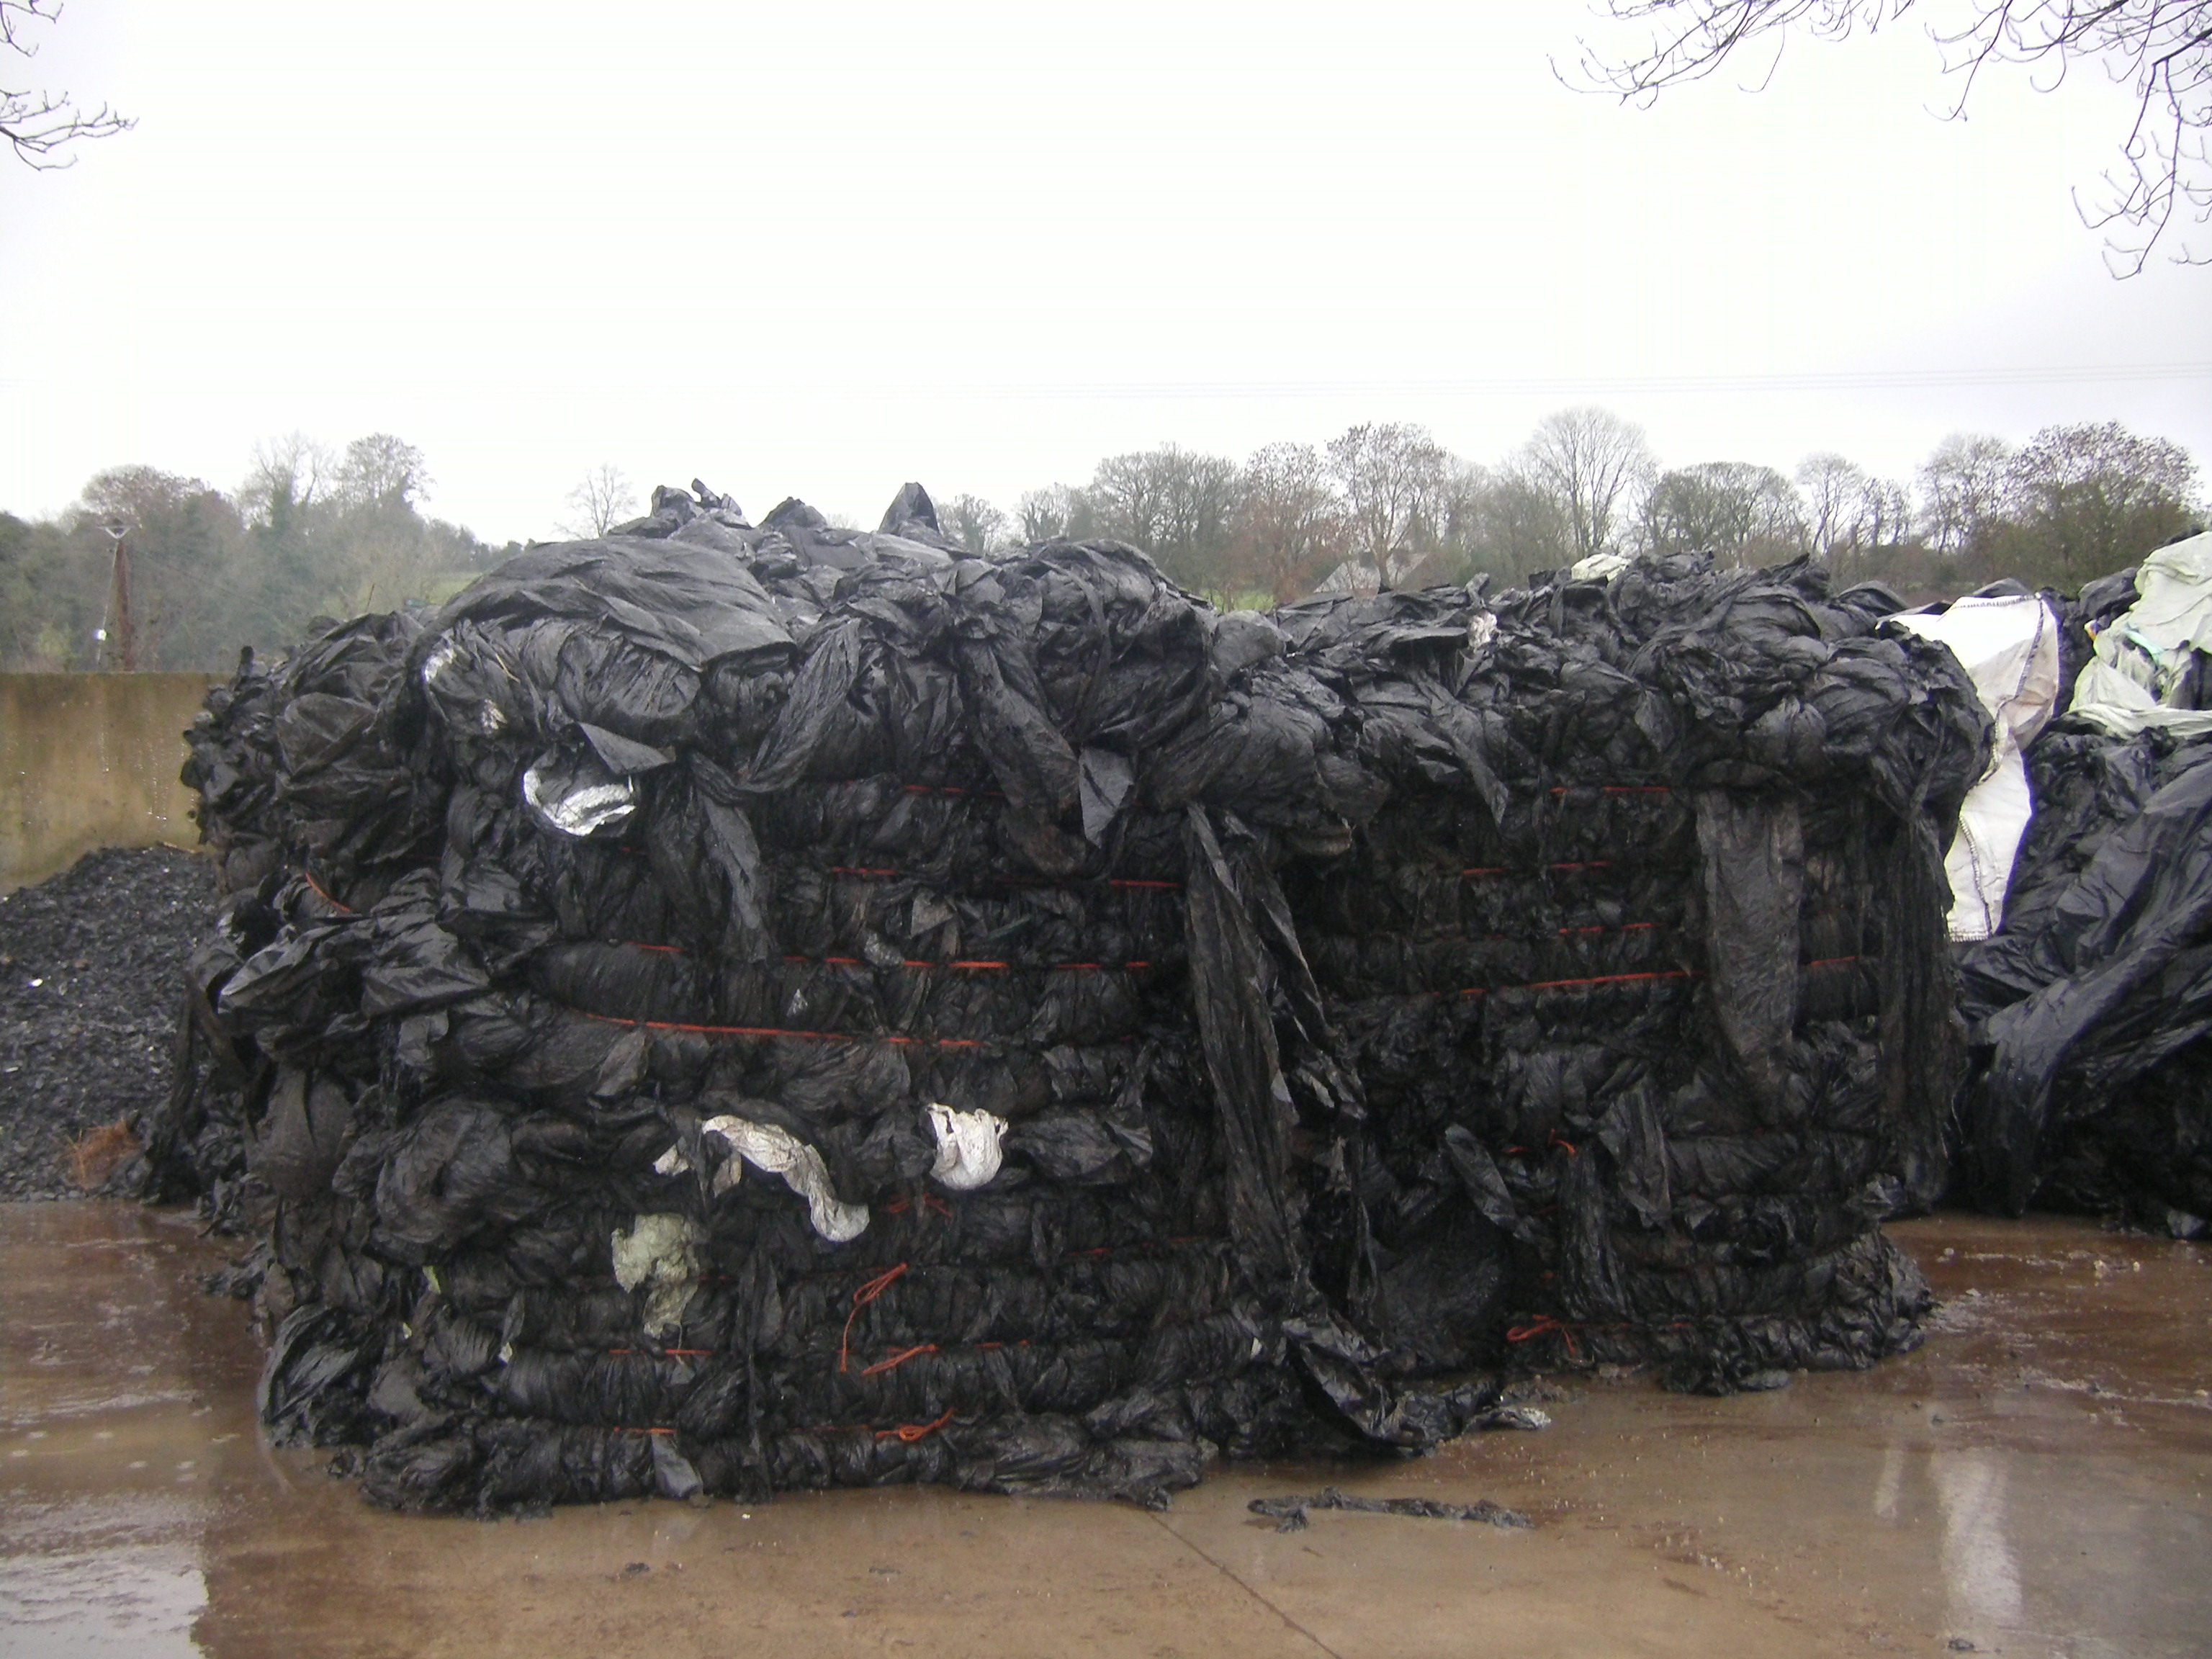 Farm plastic baled in preparation for recycling